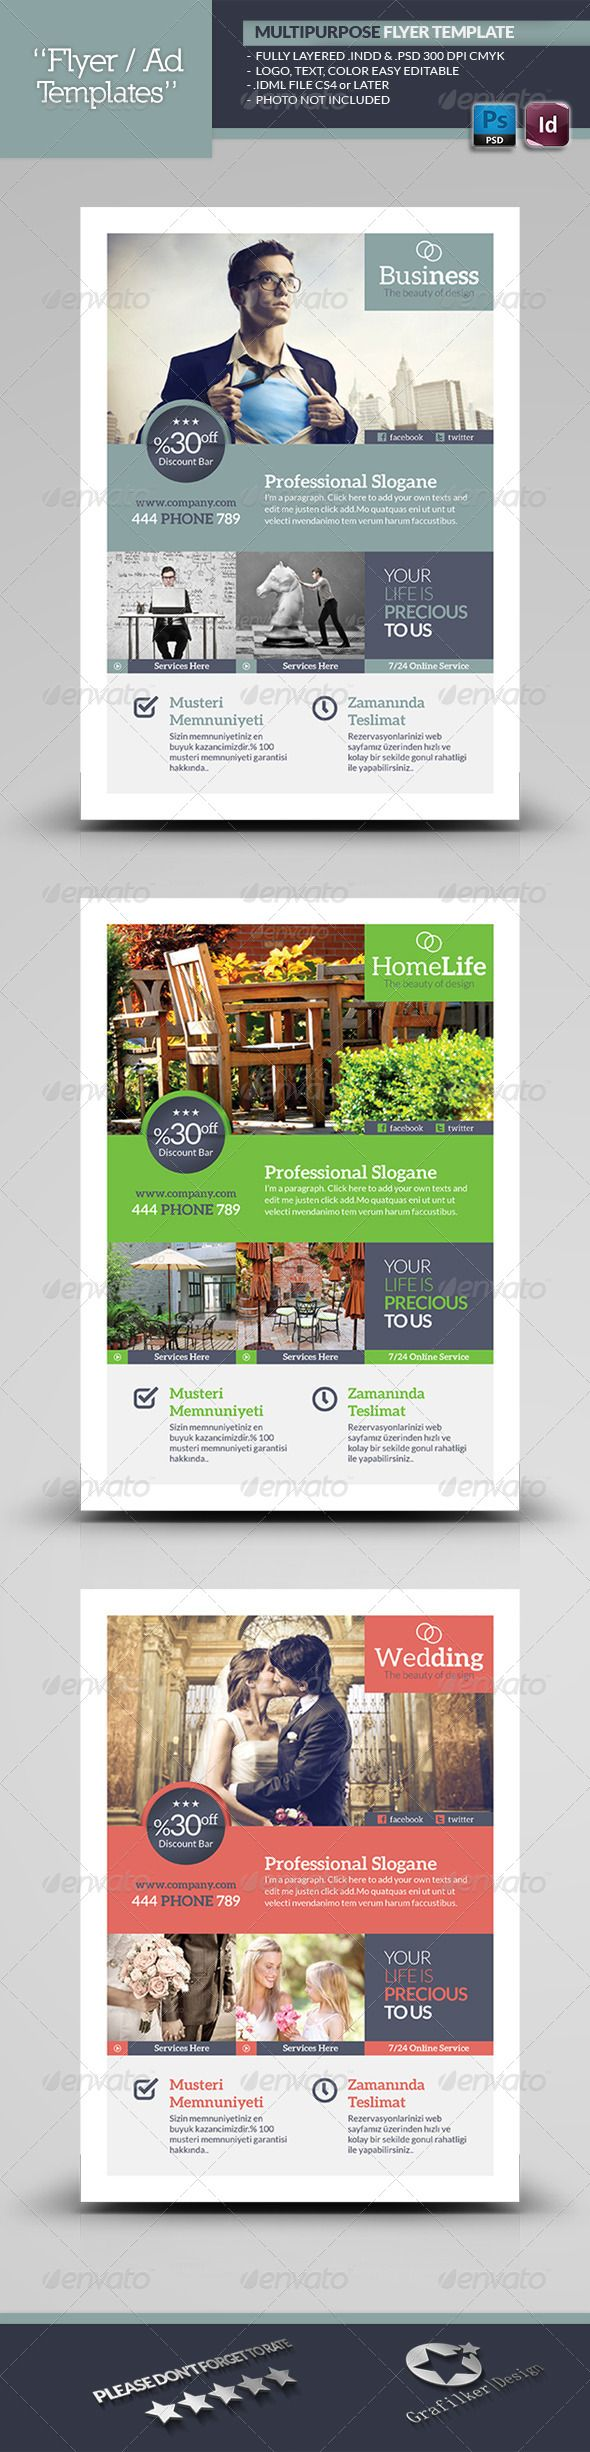 Multipurpose Flyer Template | Creative, Business marketing and ...